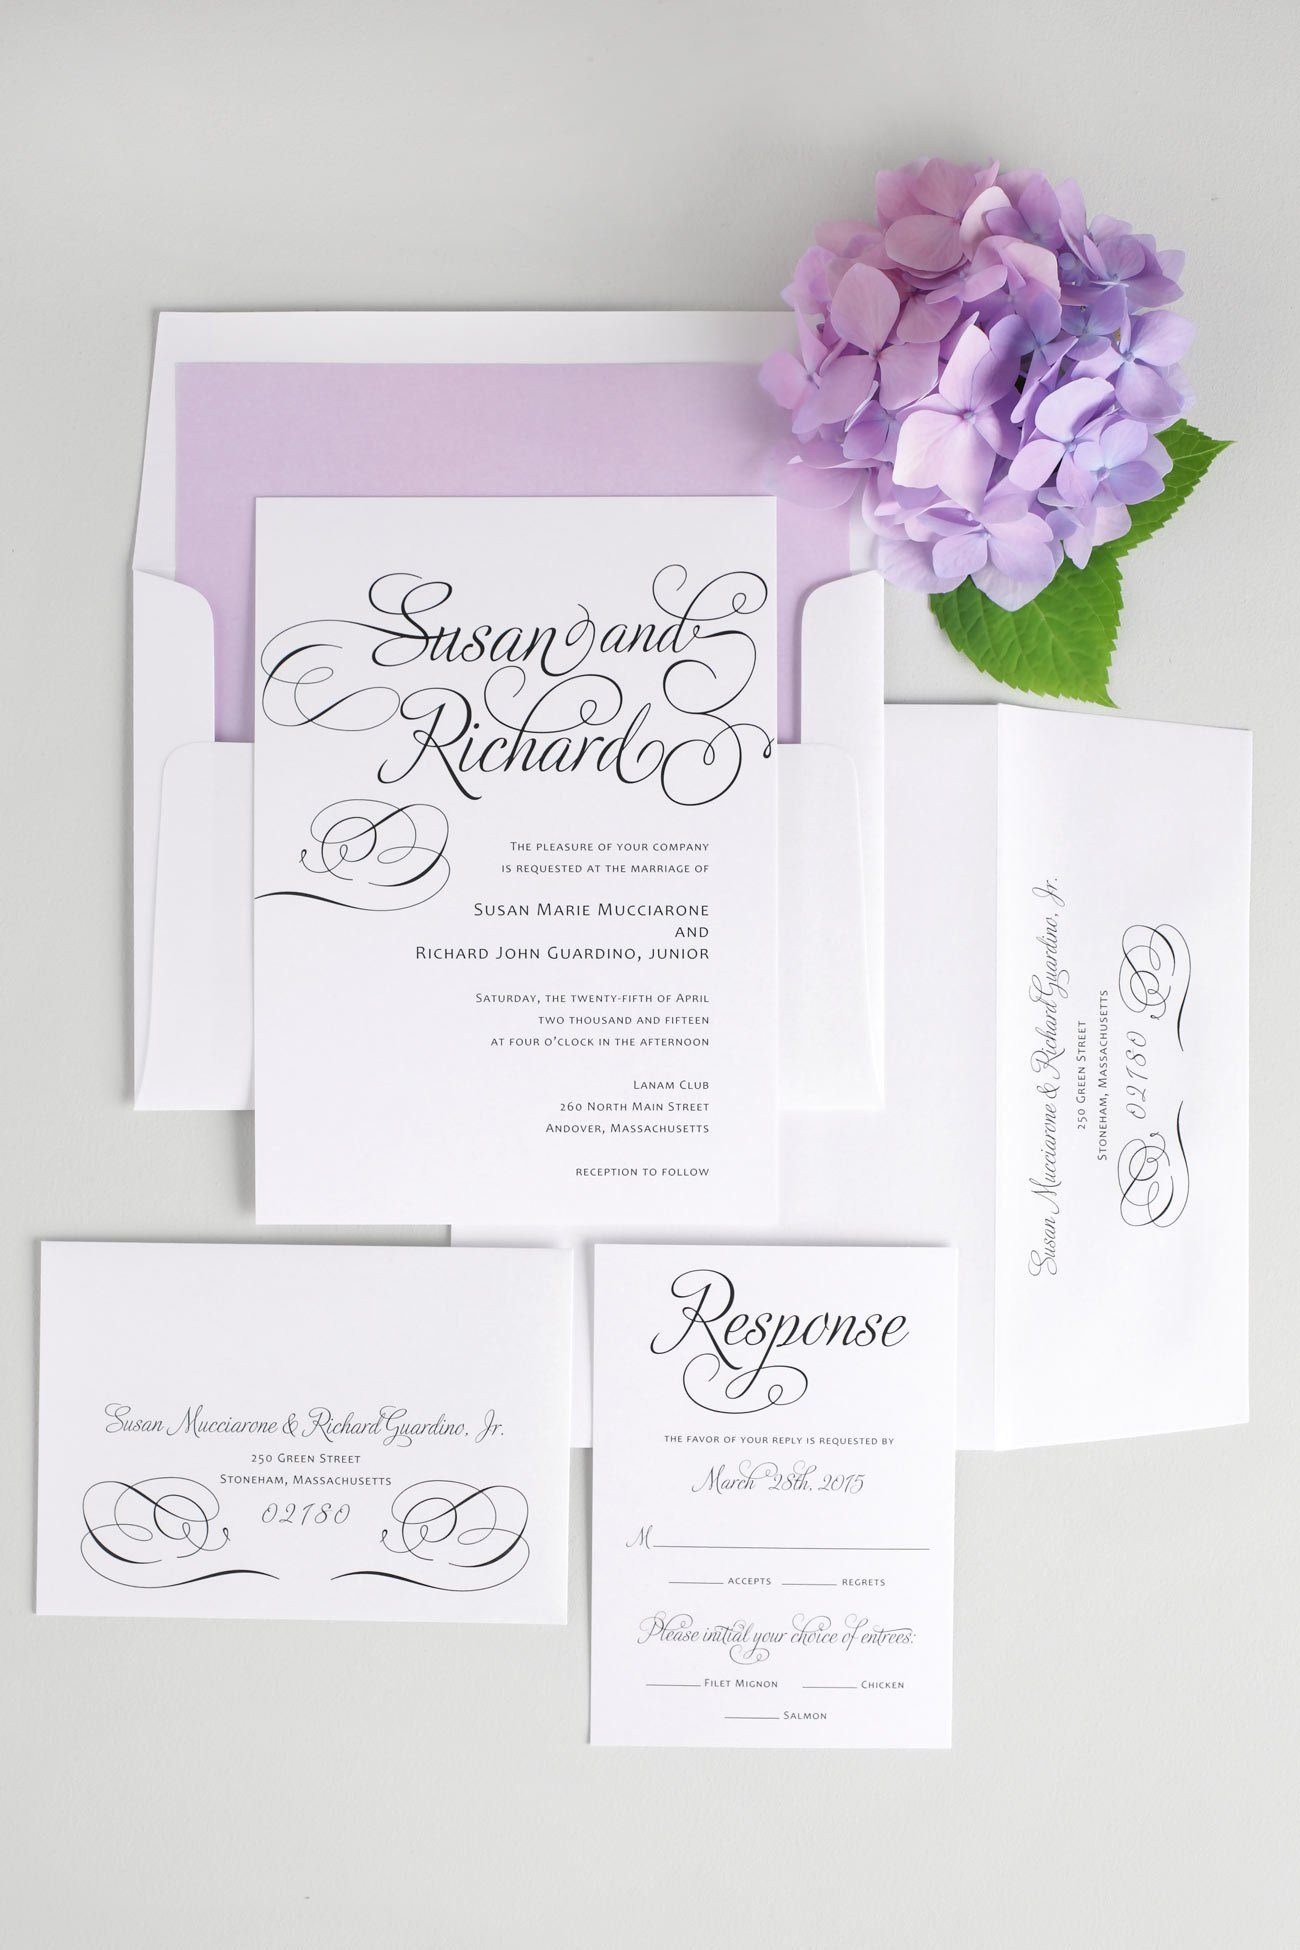 Script wedding invitations with purple accents